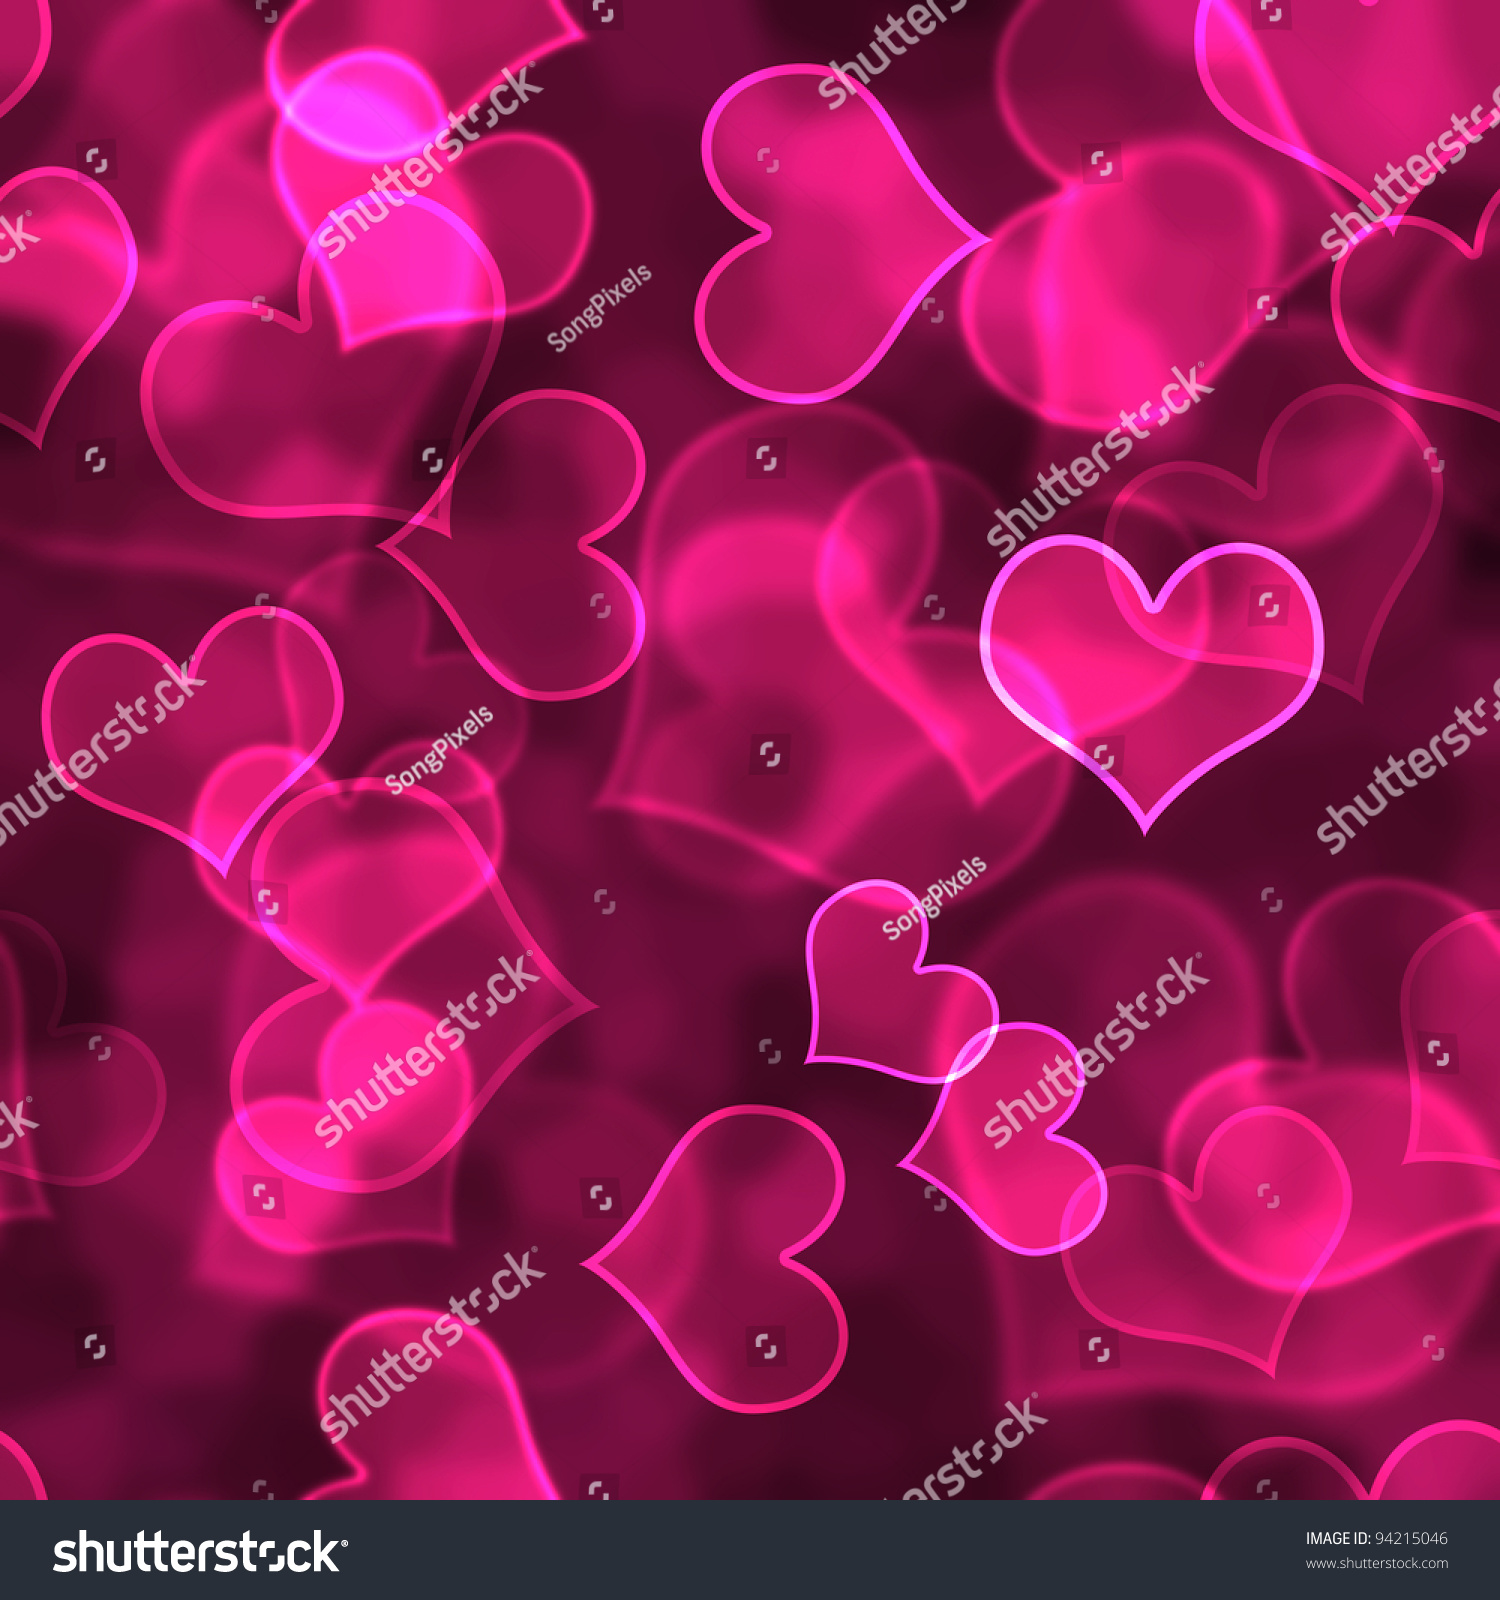 Cute Trendy Wallpapers Hot Pink Heart Background Wallpaper Stock Photo 94215046